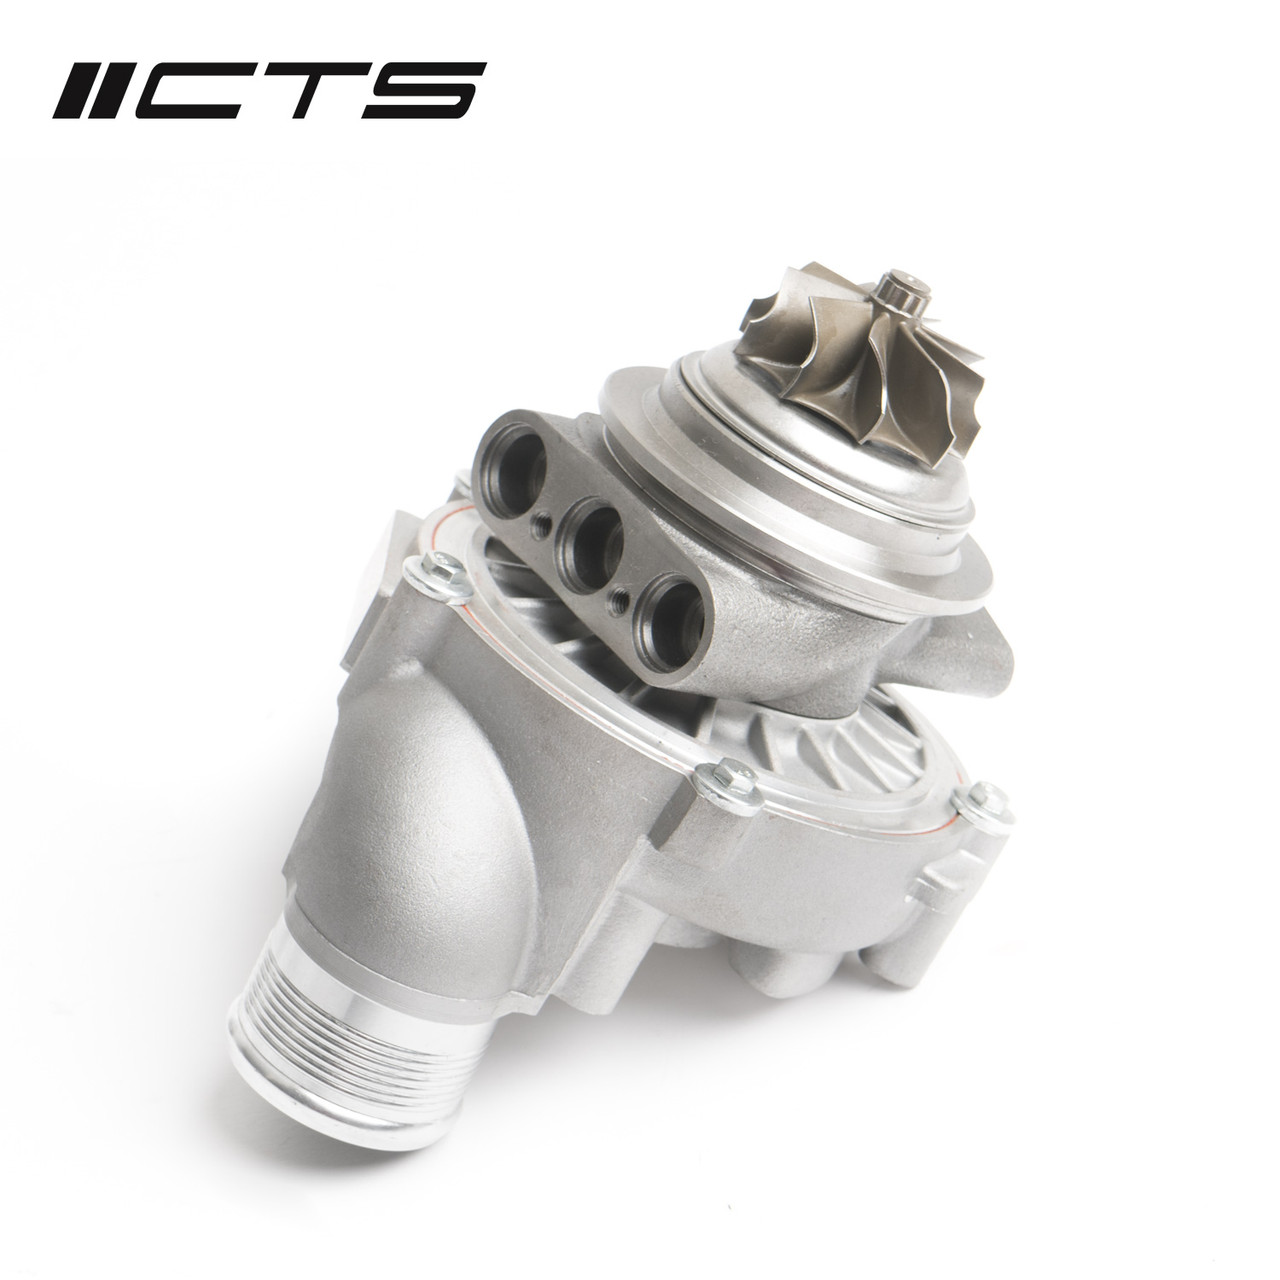 CTS TURBO SUPER CORE RS7 TURBO SET FOR AUDI C7 S6/S7/S8/RS6/RS7